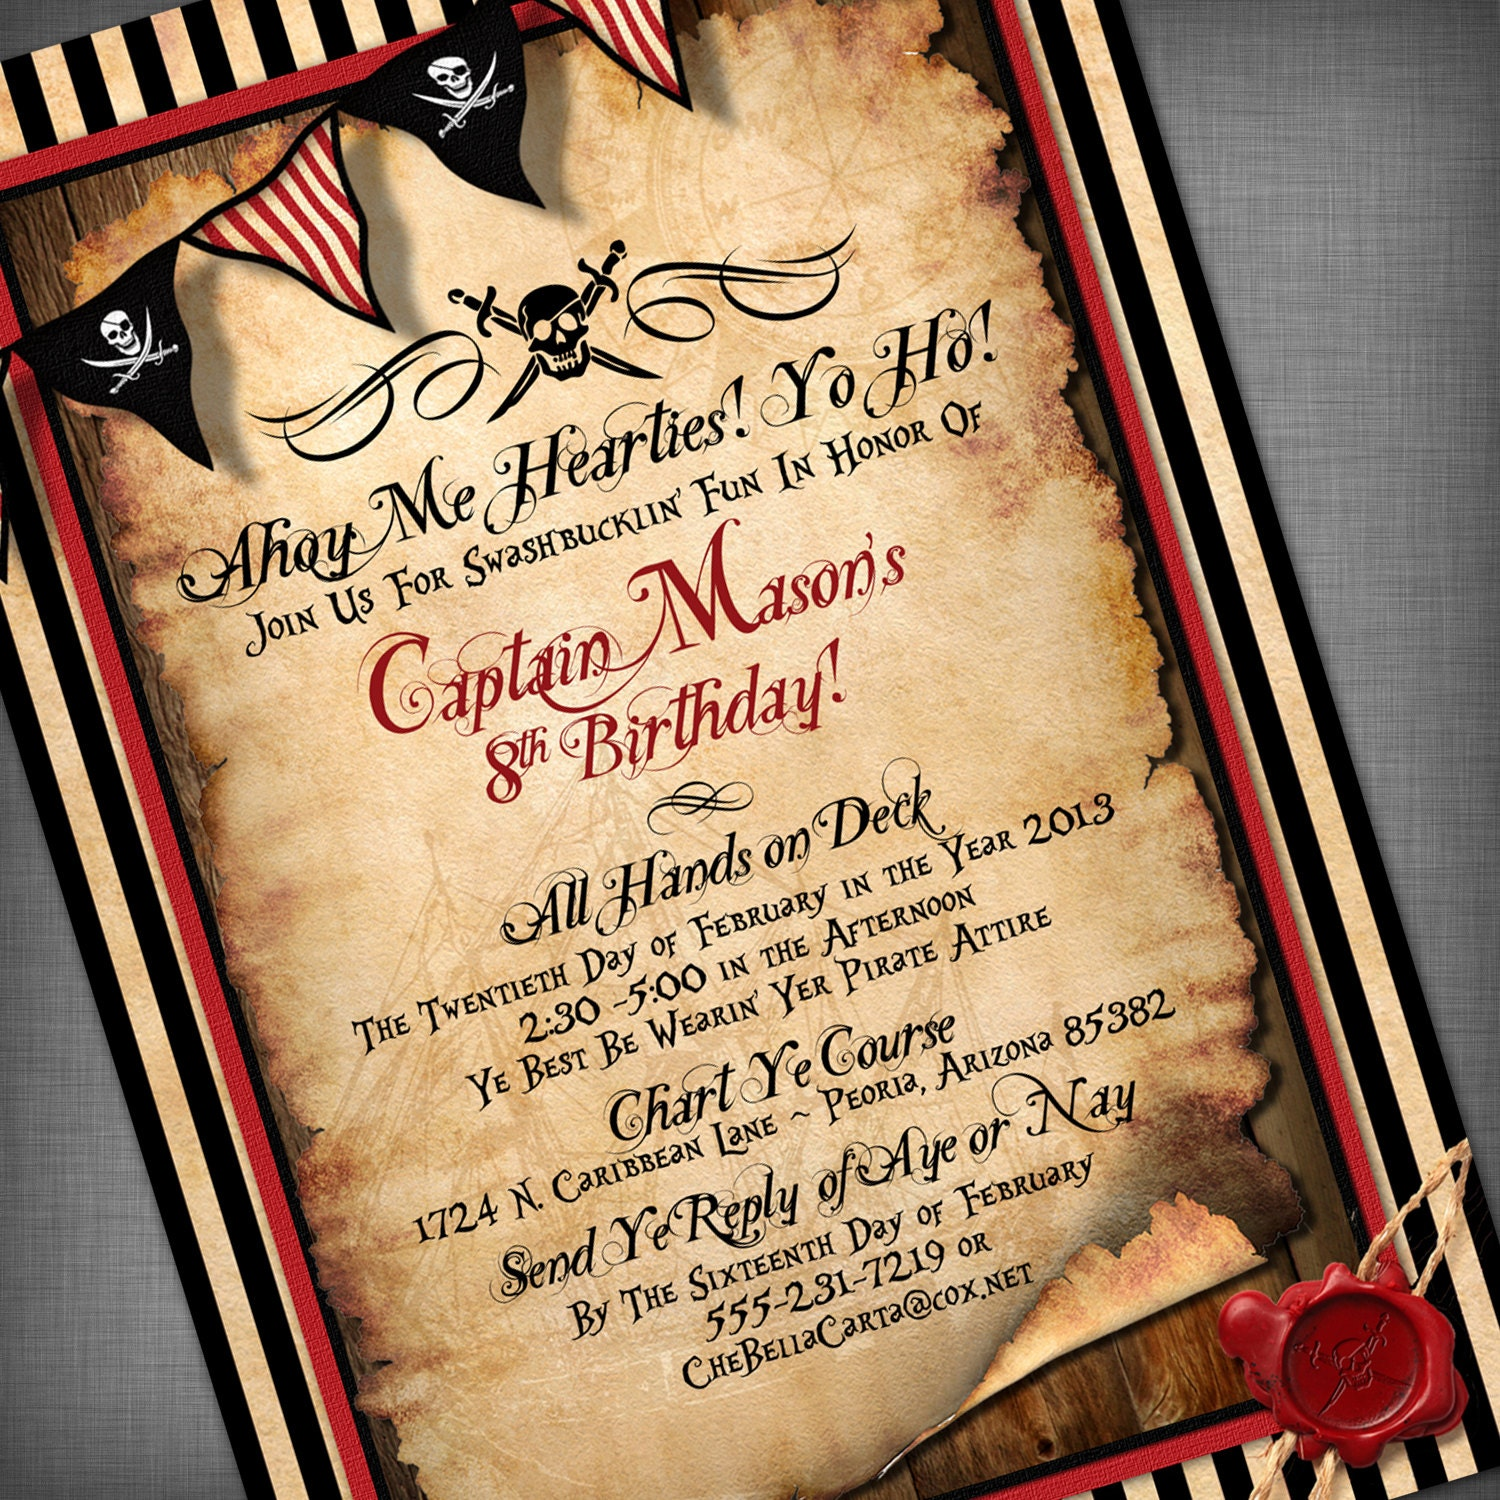 Pirate Party Invitation Wording with beautiful invitations ideas